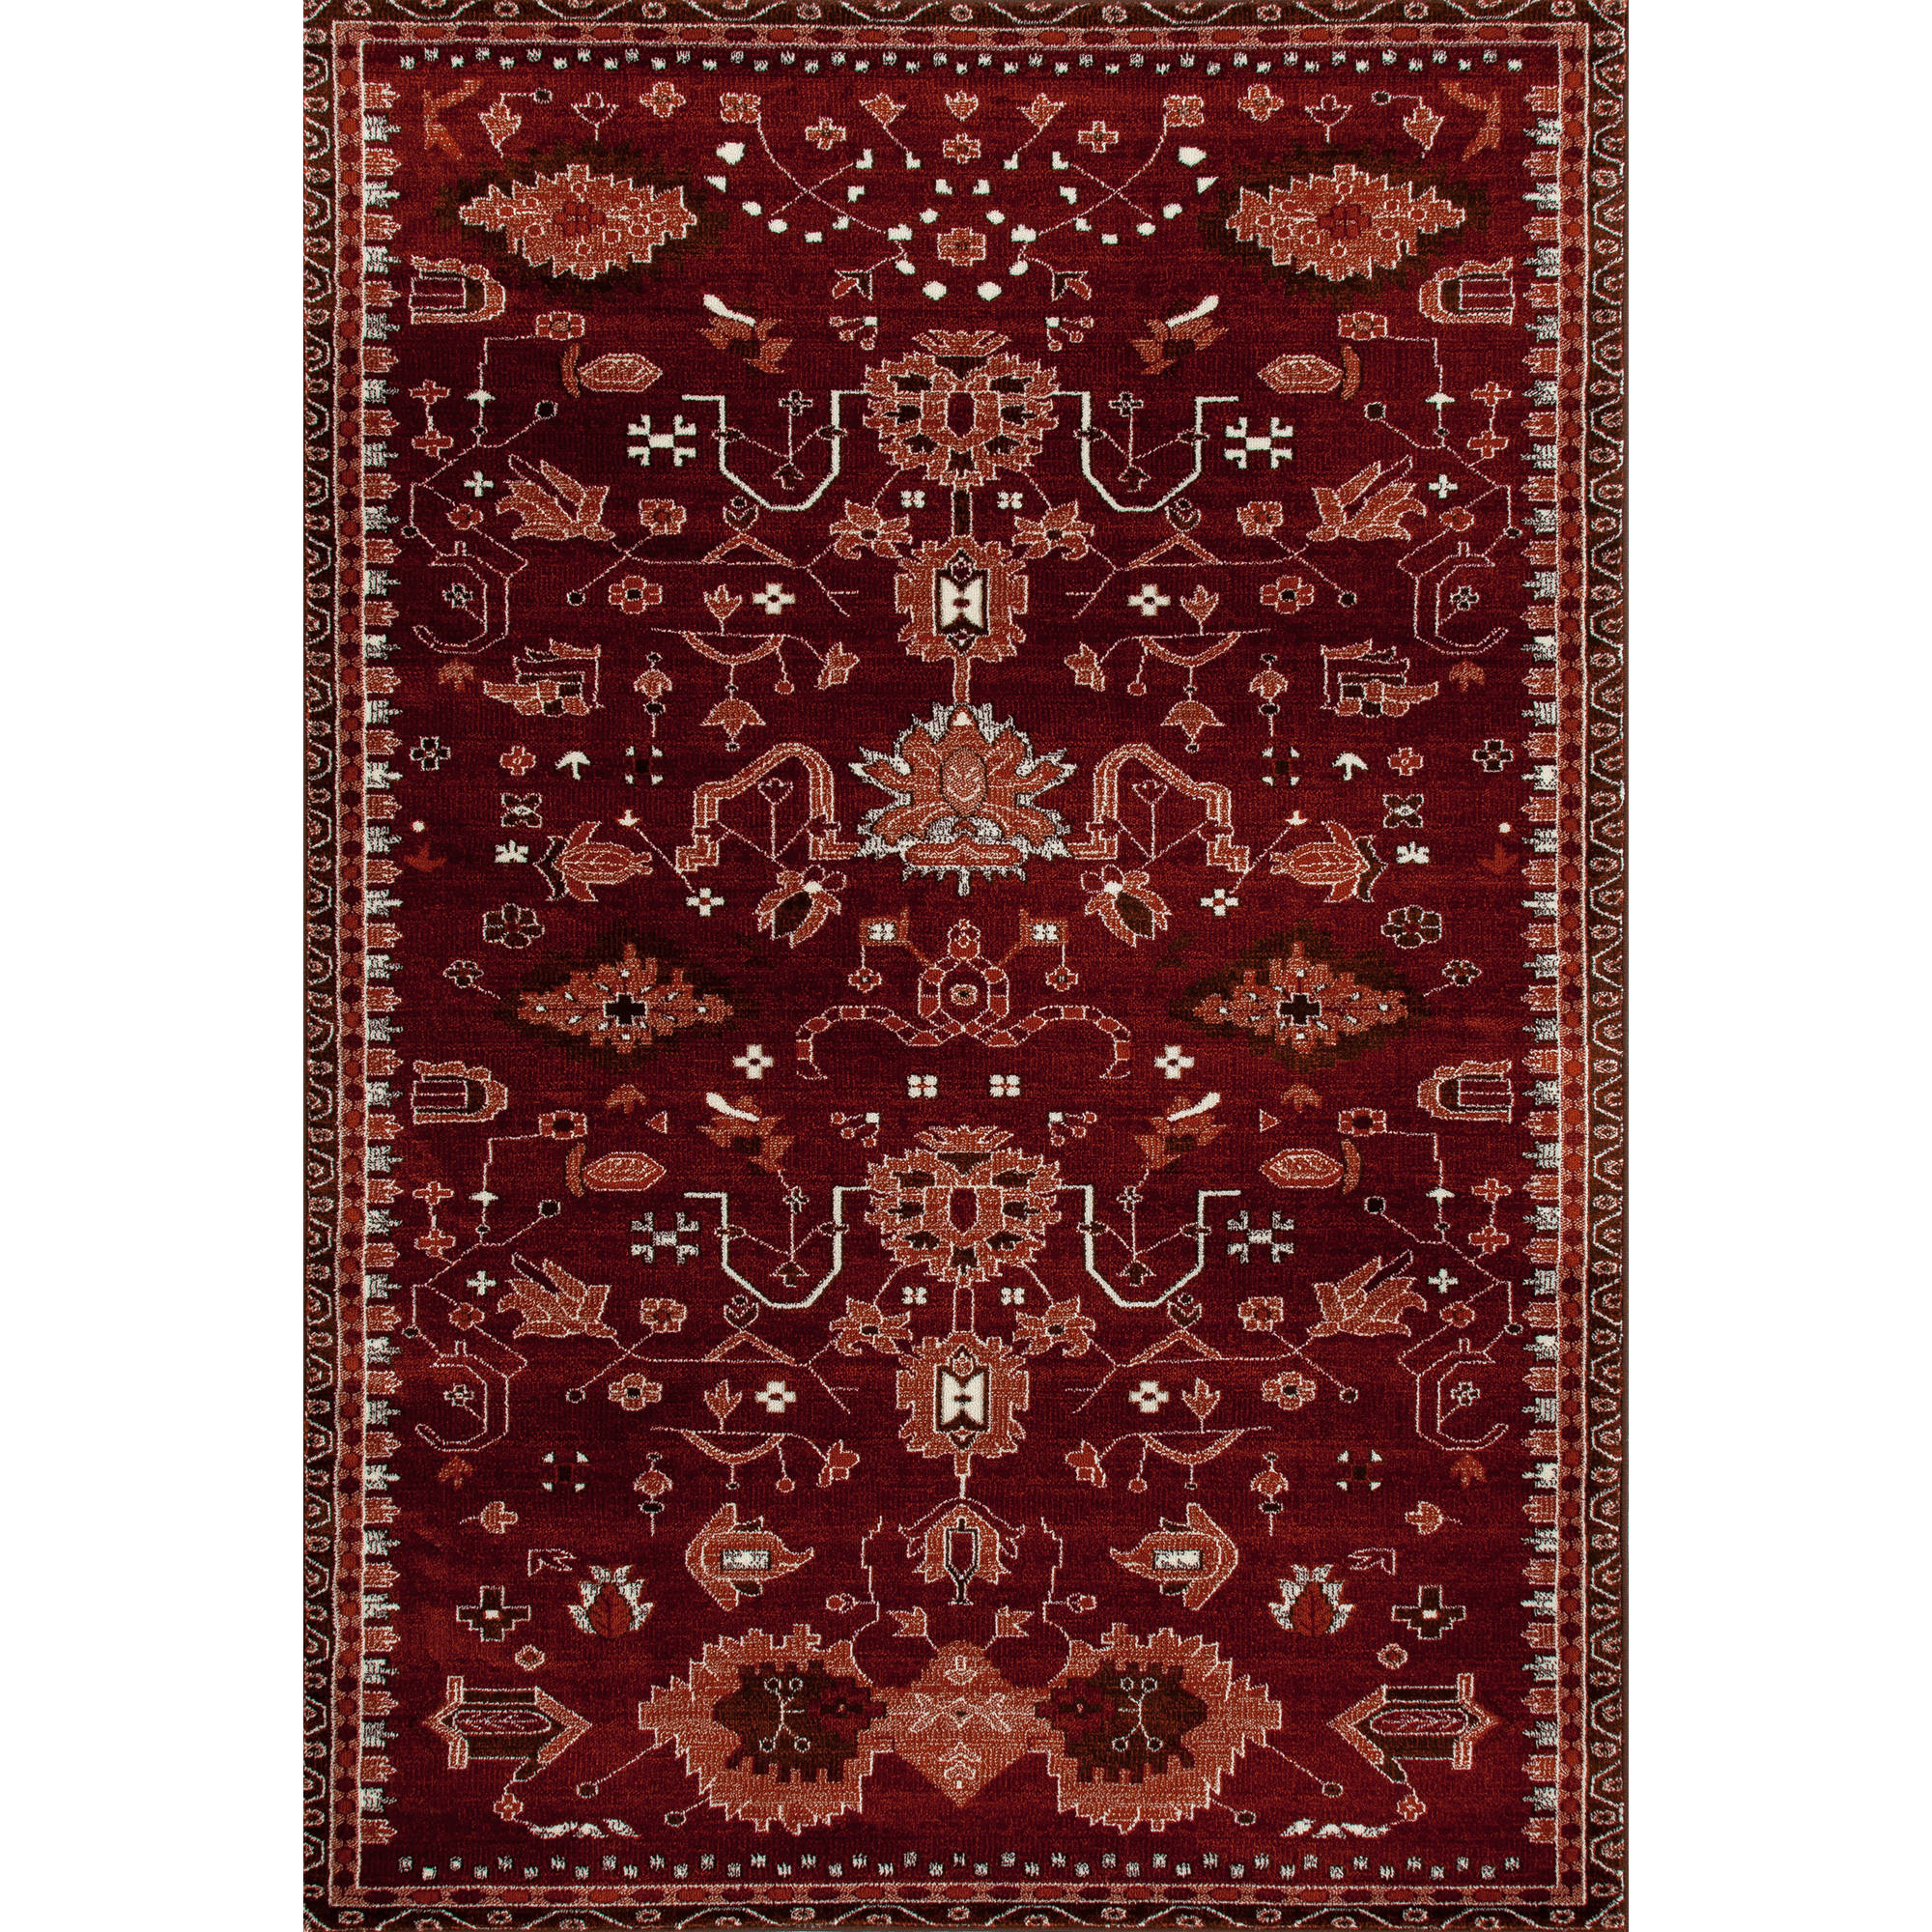 Traditional Classic Woven Area Rug, 40